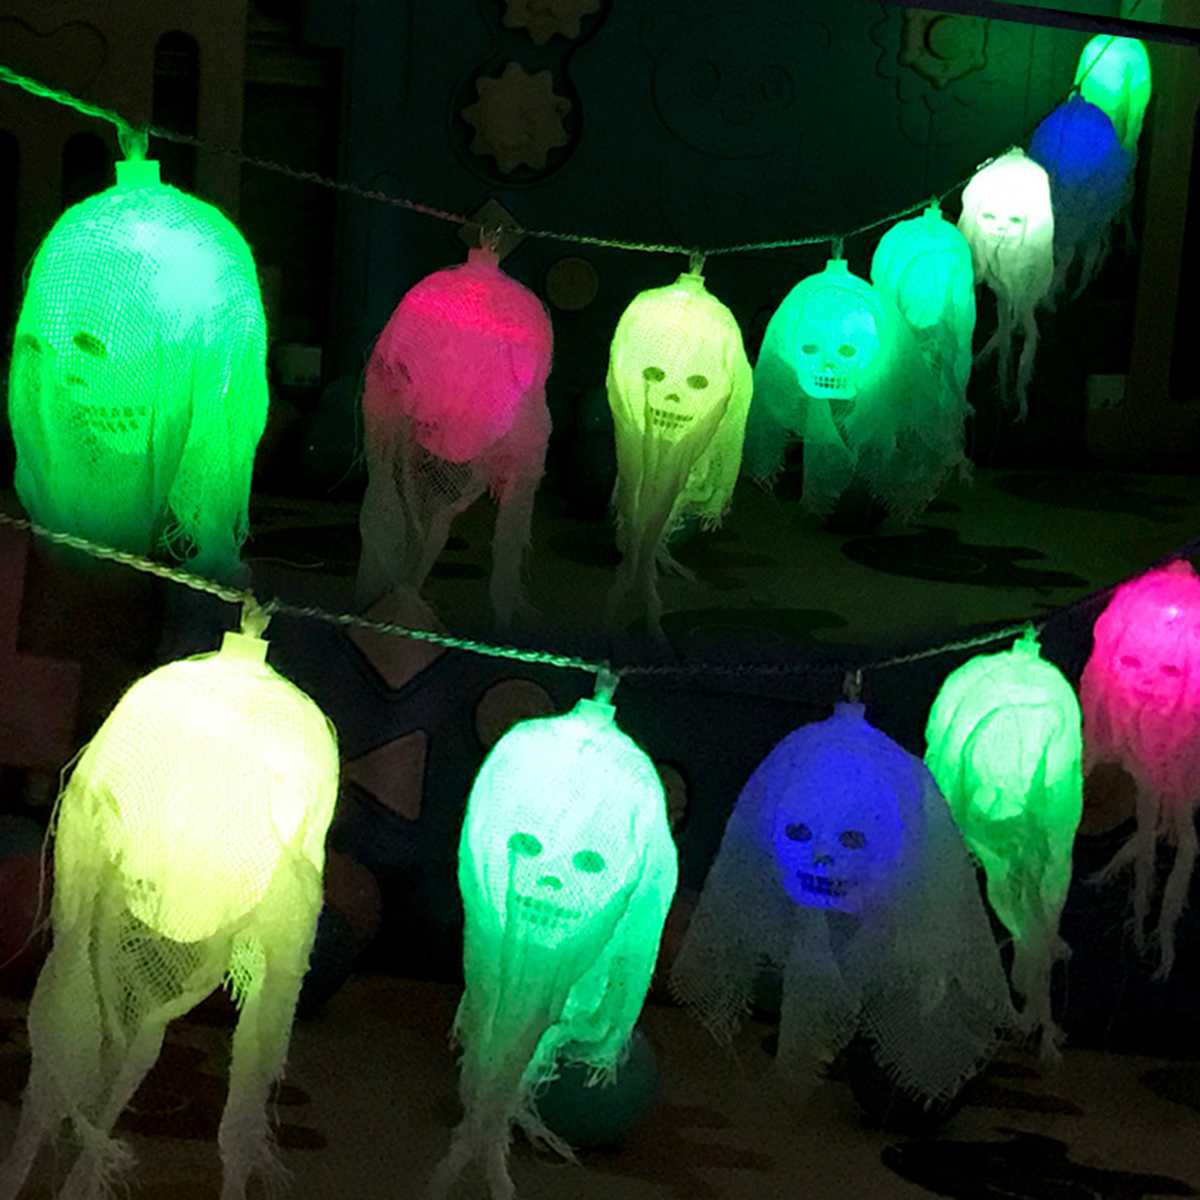 2.5M Battery Powered 10 LED Skull String Light With Lace IP44 Colorful Decoration Lamp For Halloween Ghost Party Decor